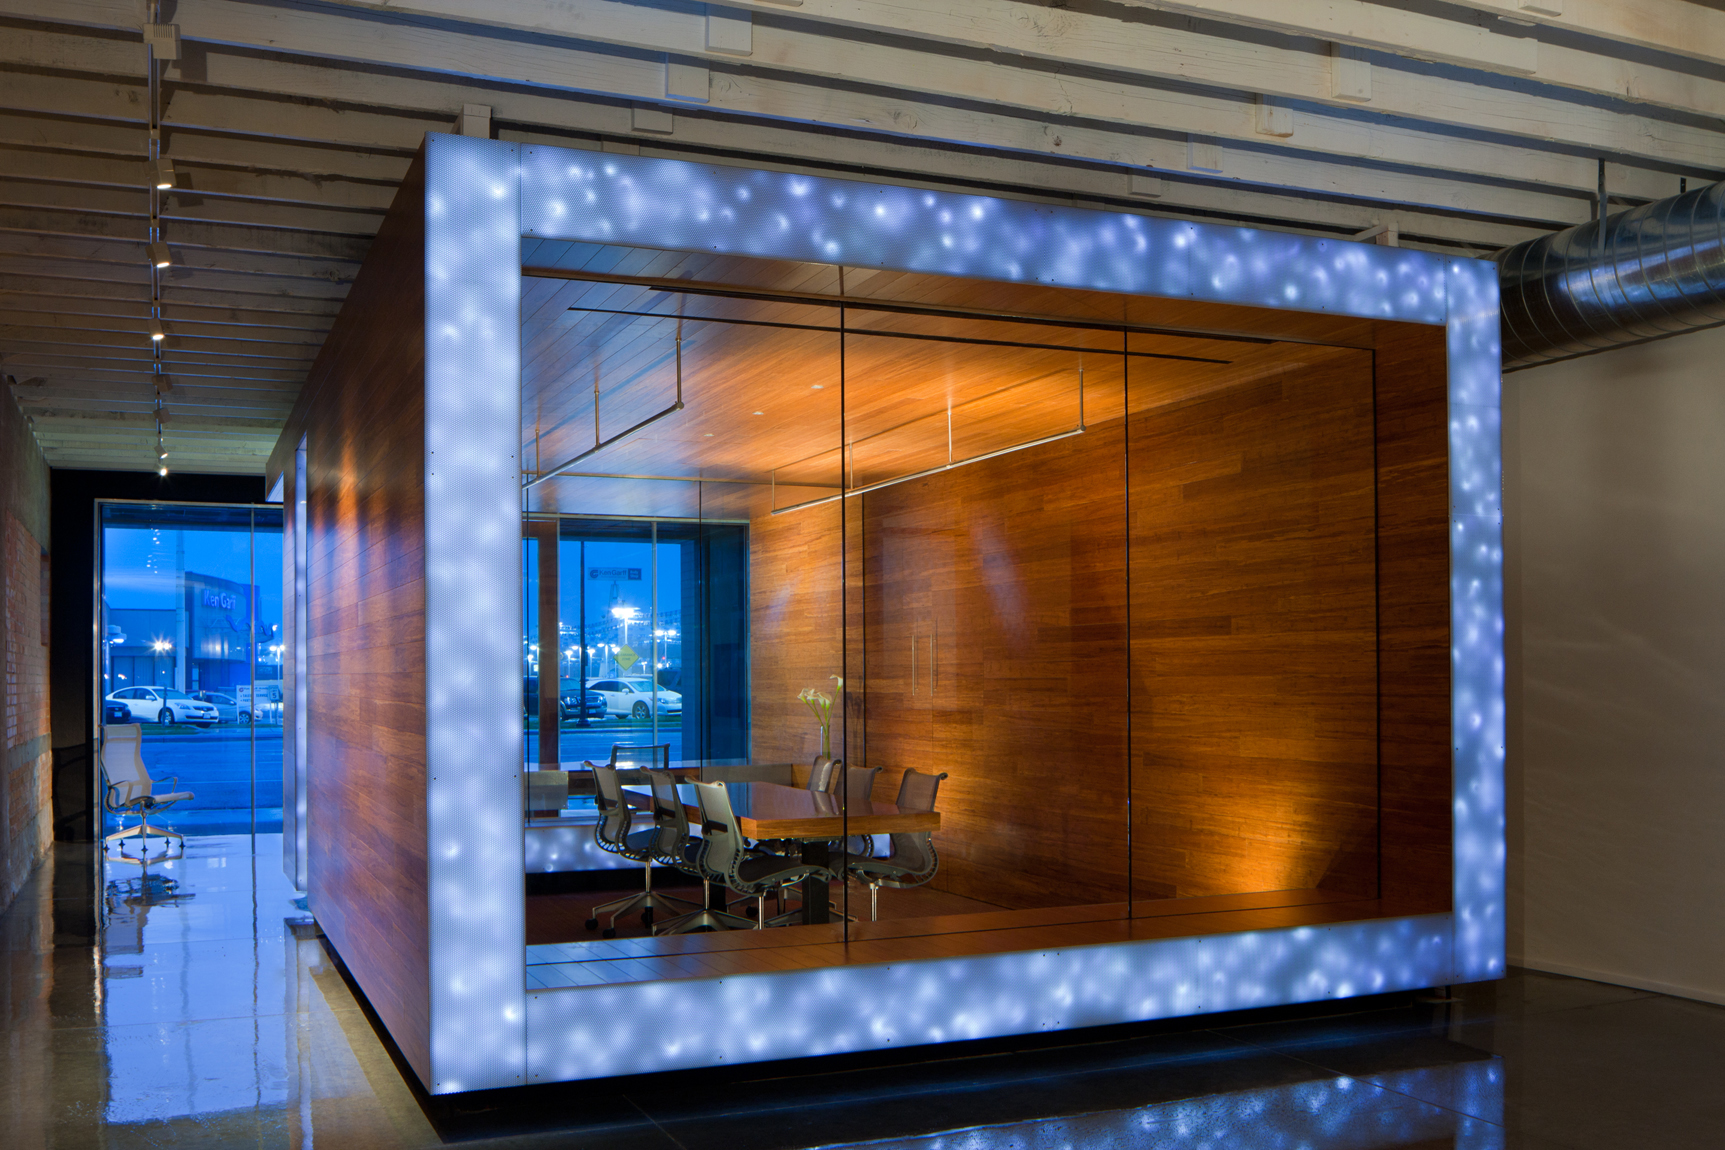 View of office conference room made of warm wod and glass with LED lights. Shiny concrete floors and blue, dusk windows.Architectural Photography by: Paul Richer / RICHER IMAGES